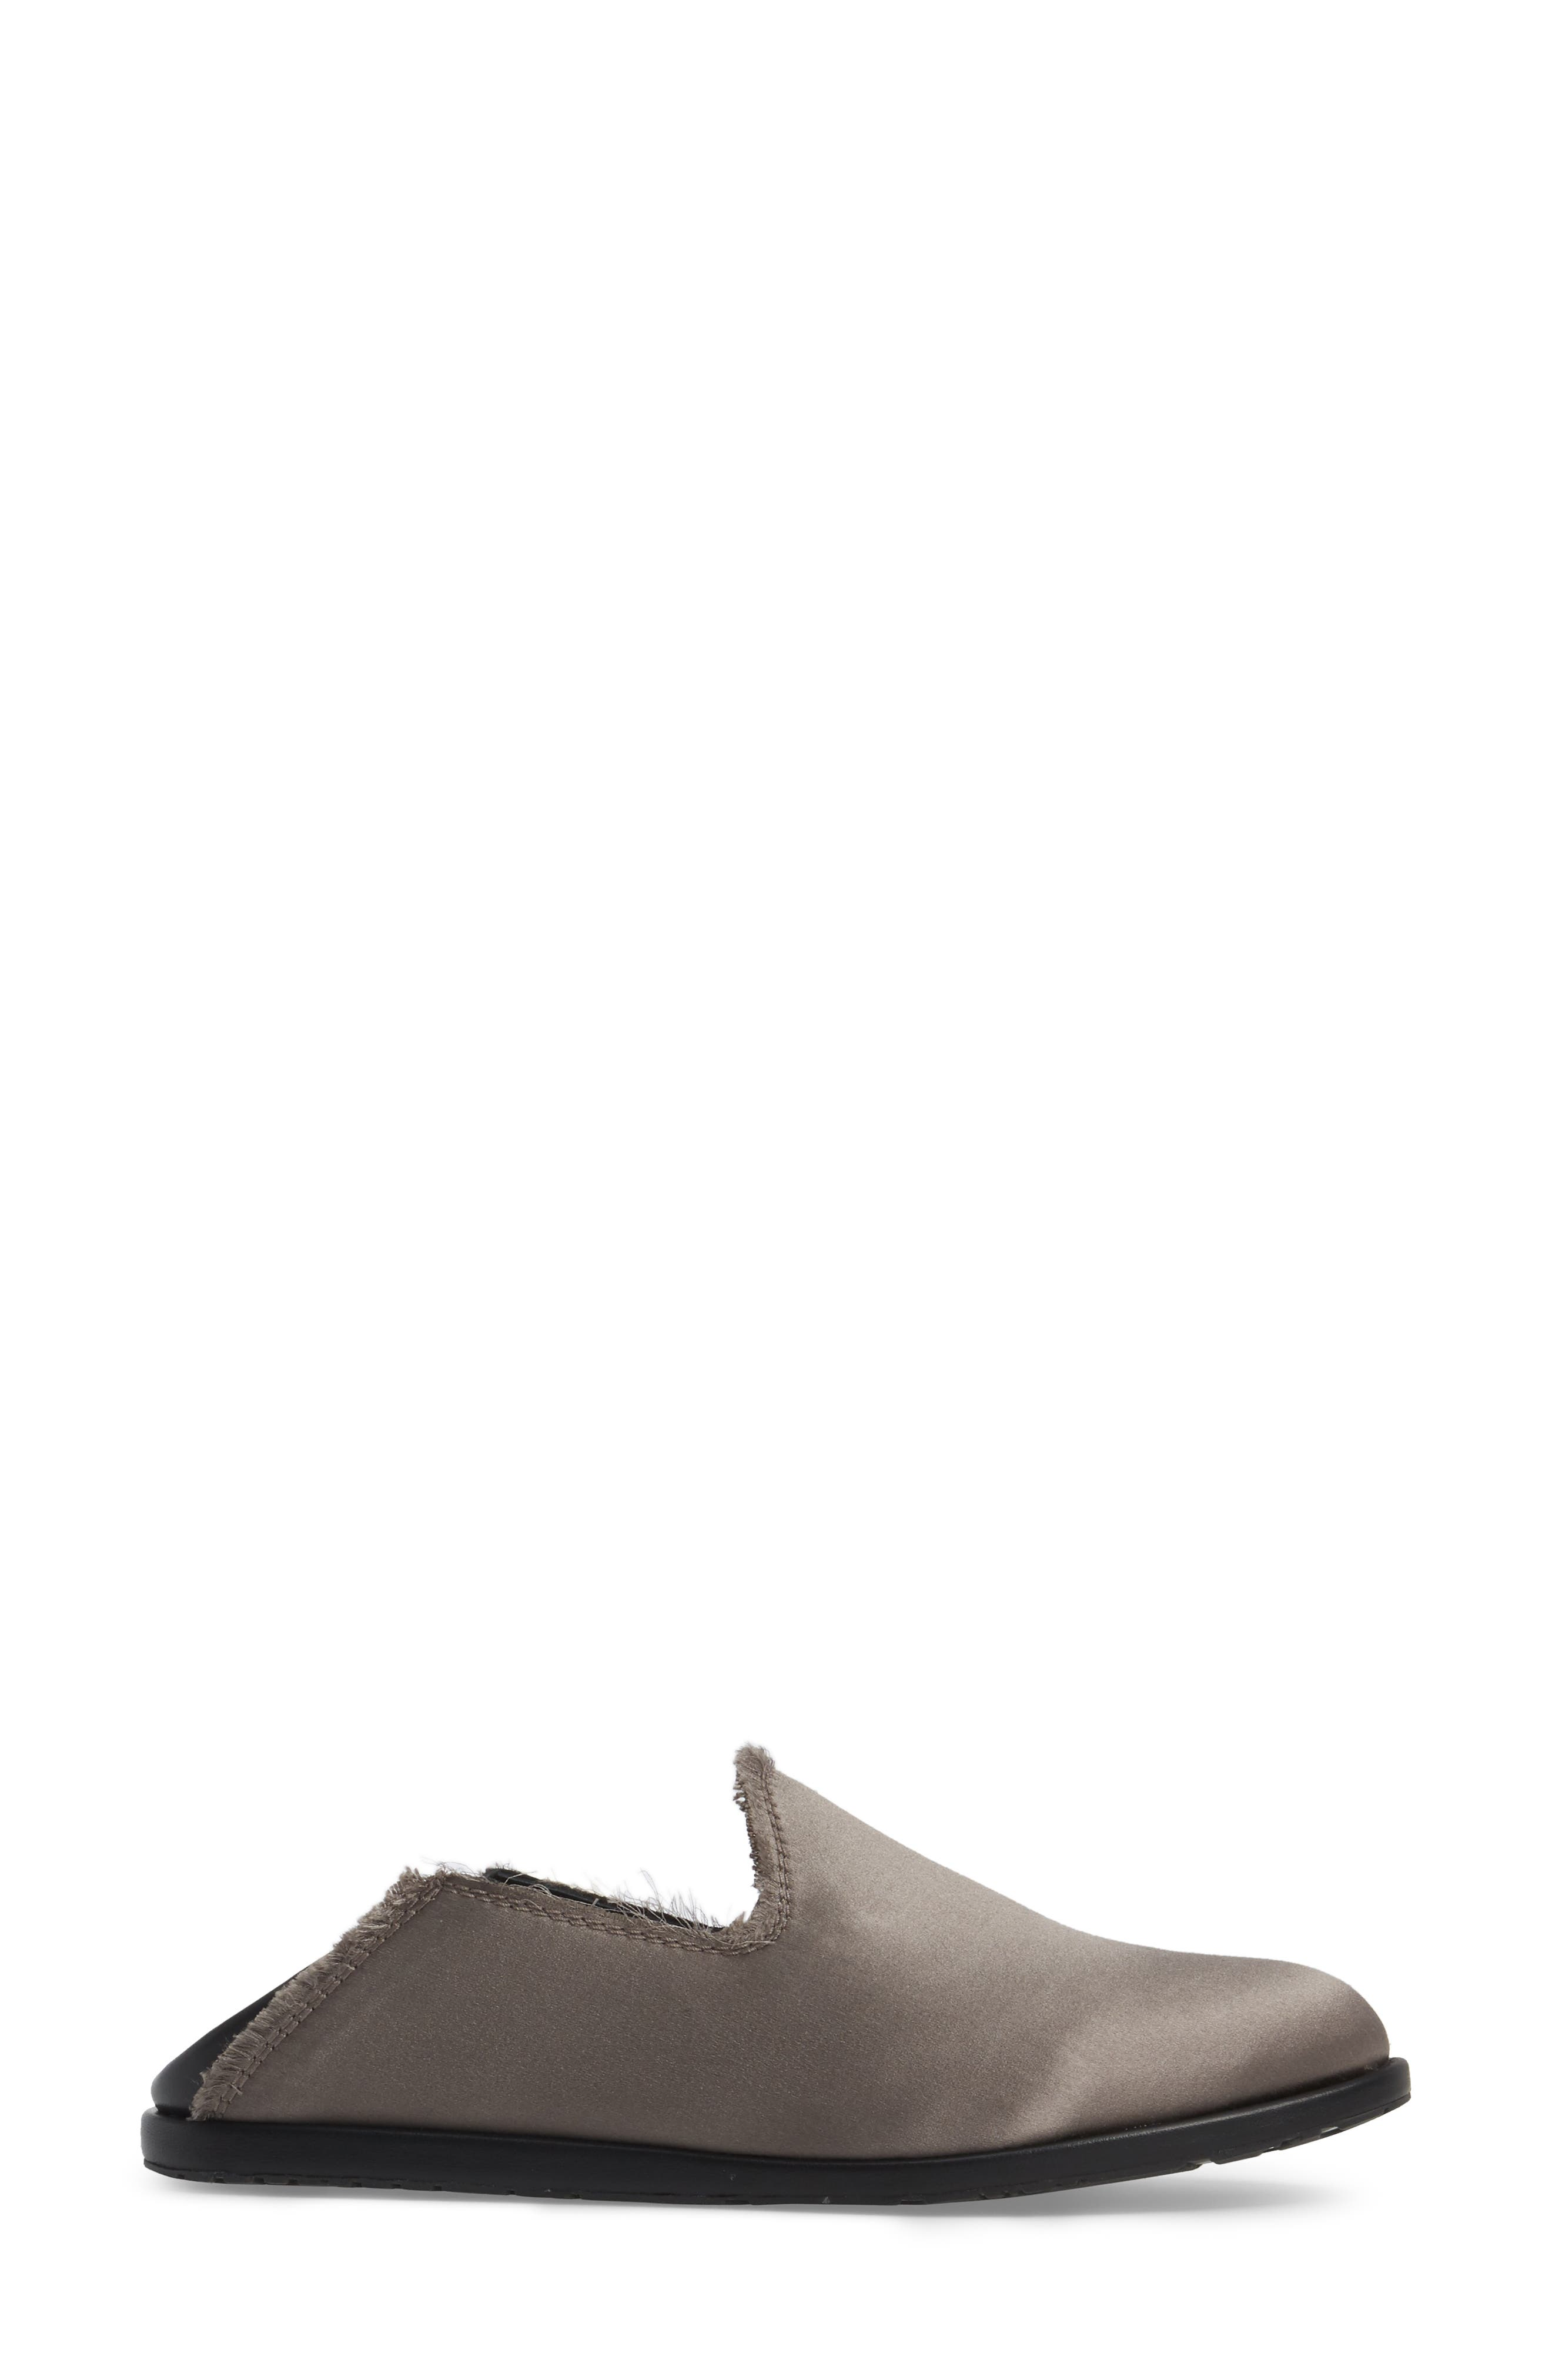 Yamir Convertible Loafer,                             Alternate thumbnail 4, color,                             Truffle Satin